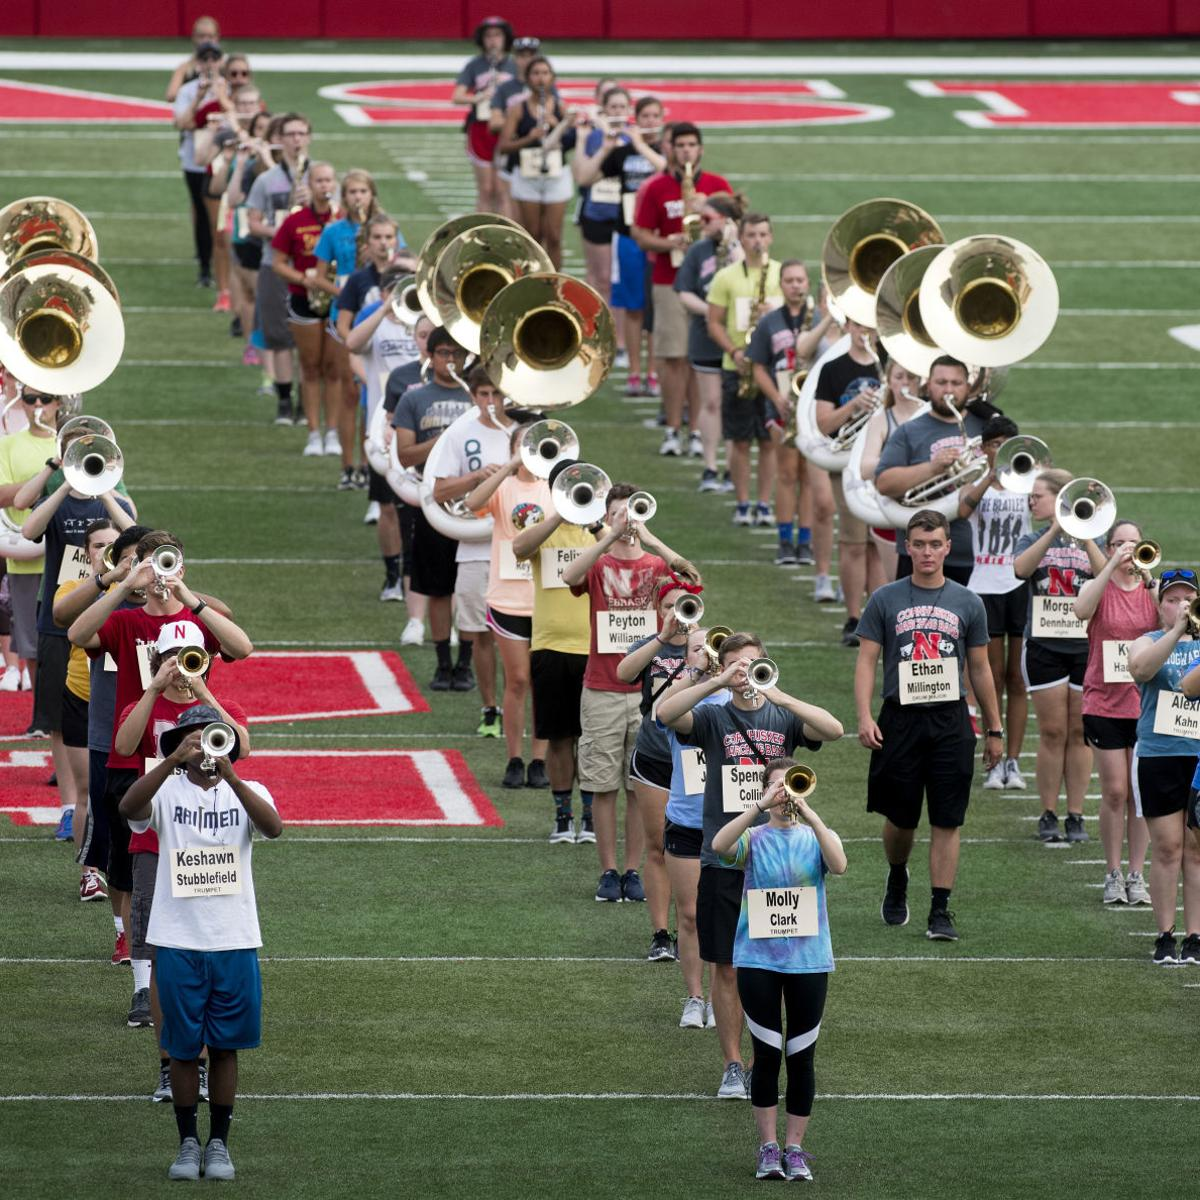 Making the cut: UNL students earn their way onto the